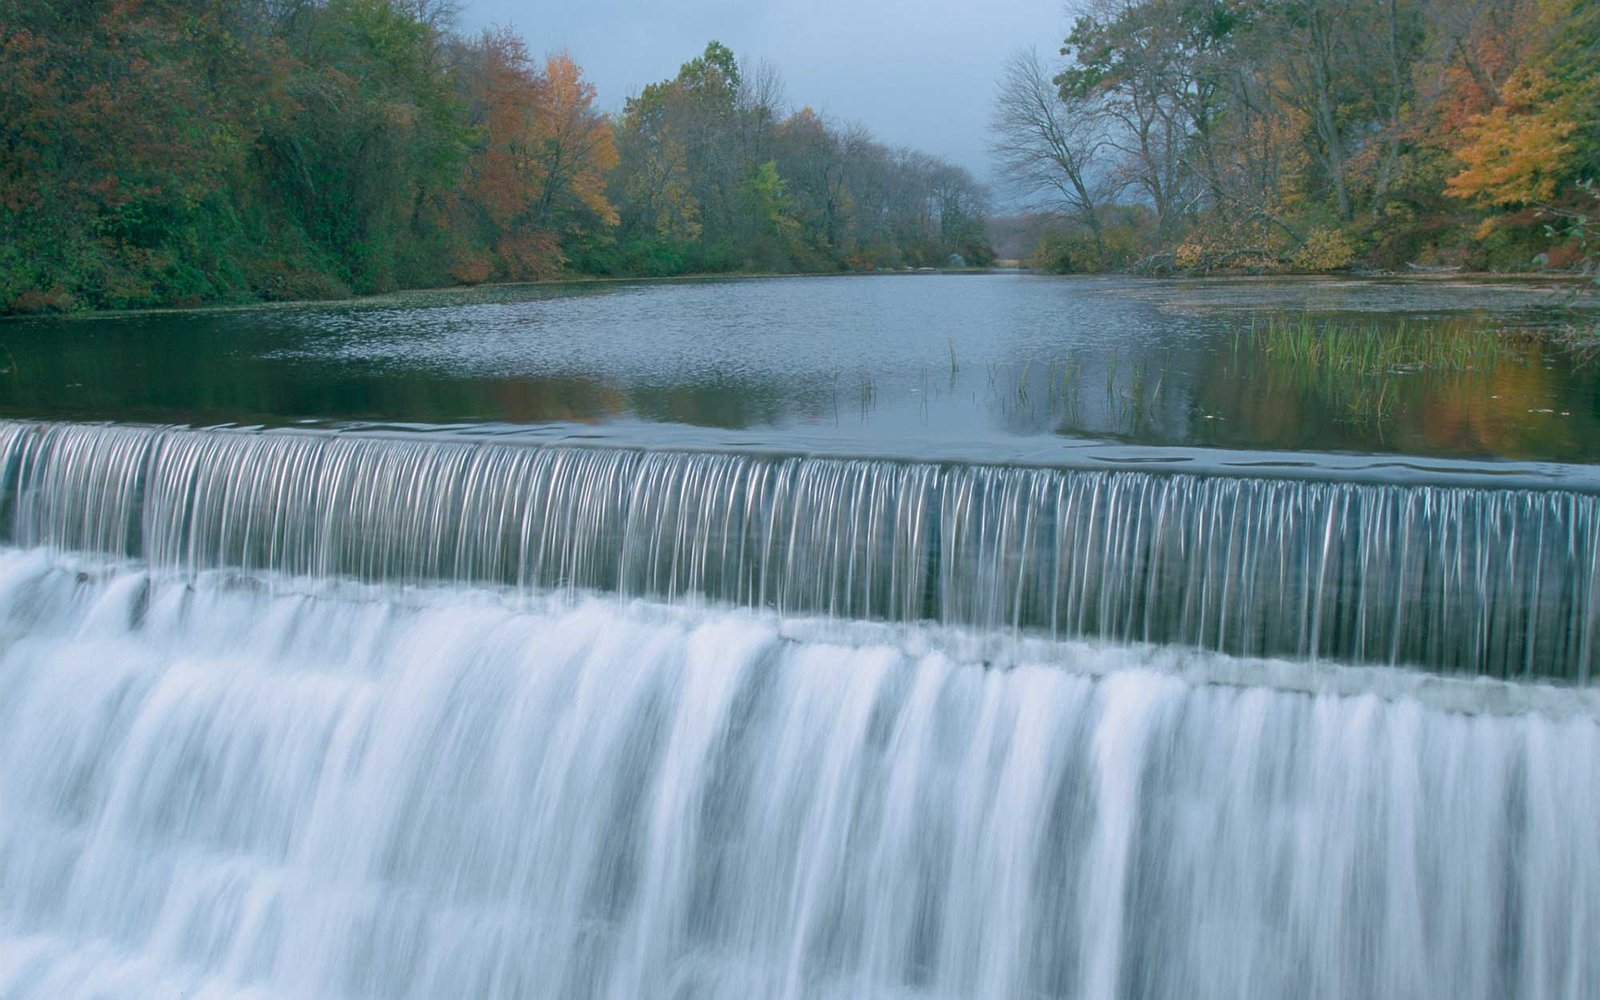 Falls in Blackstone River Valley National Heritage Corridor